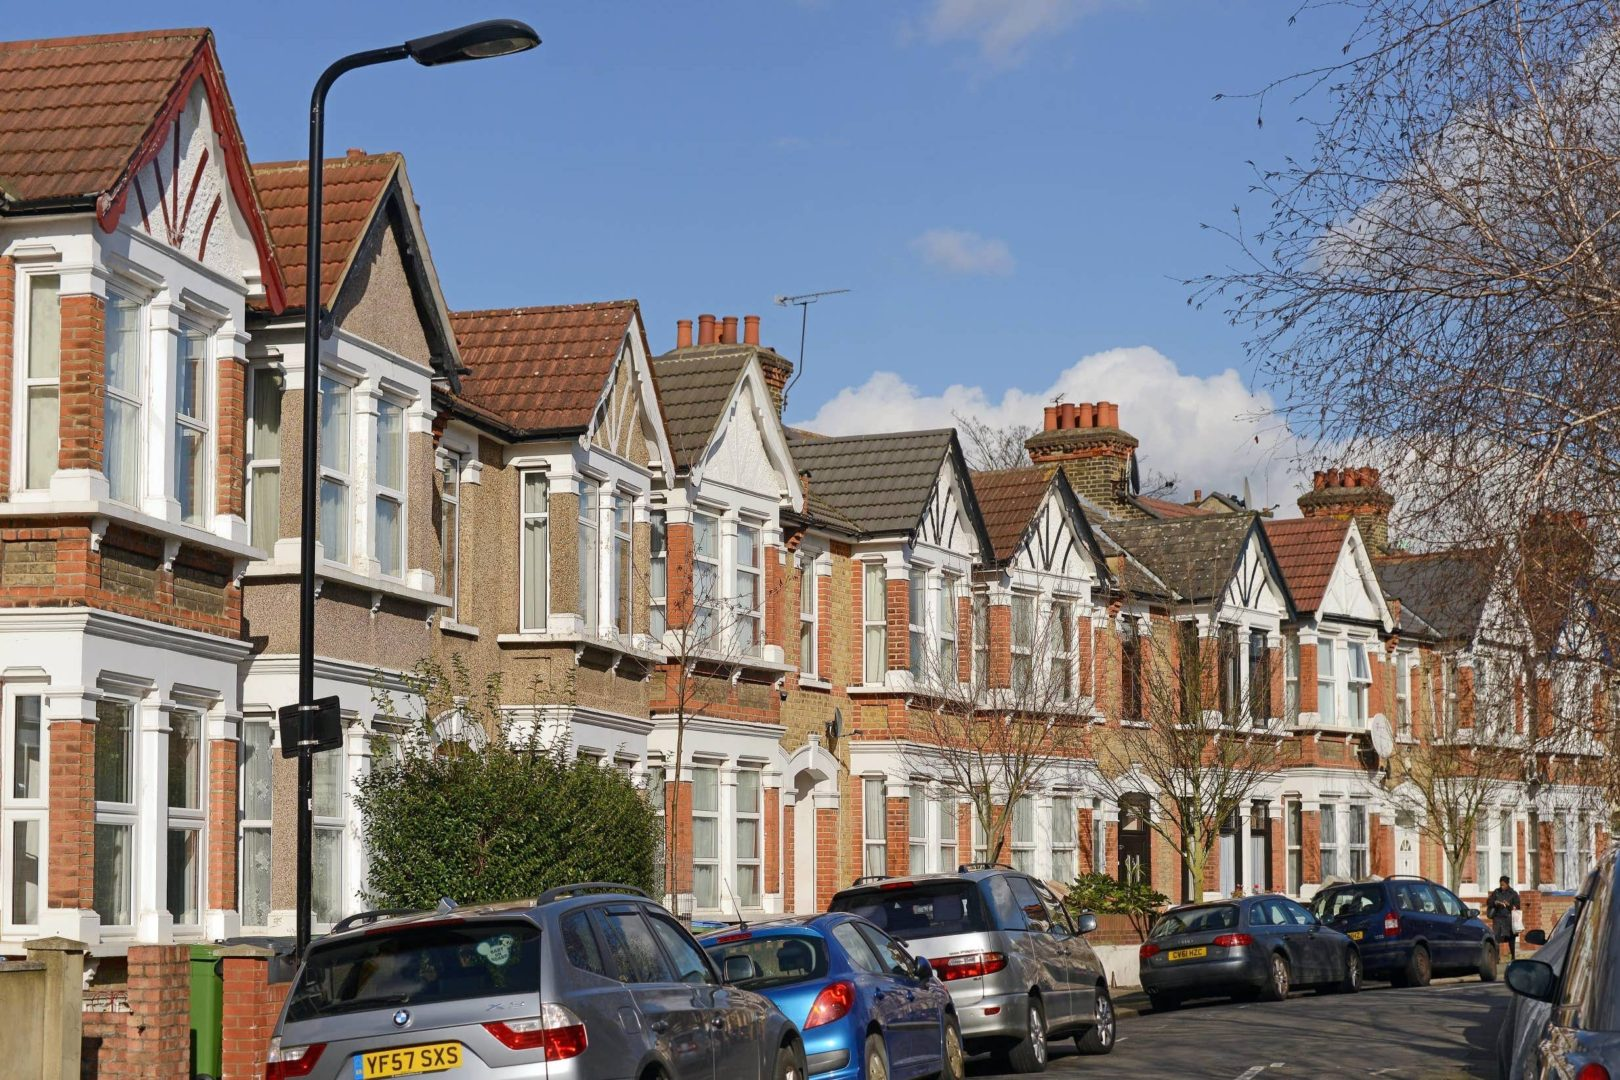 Take the upsurge in house prices with a pinch of salt